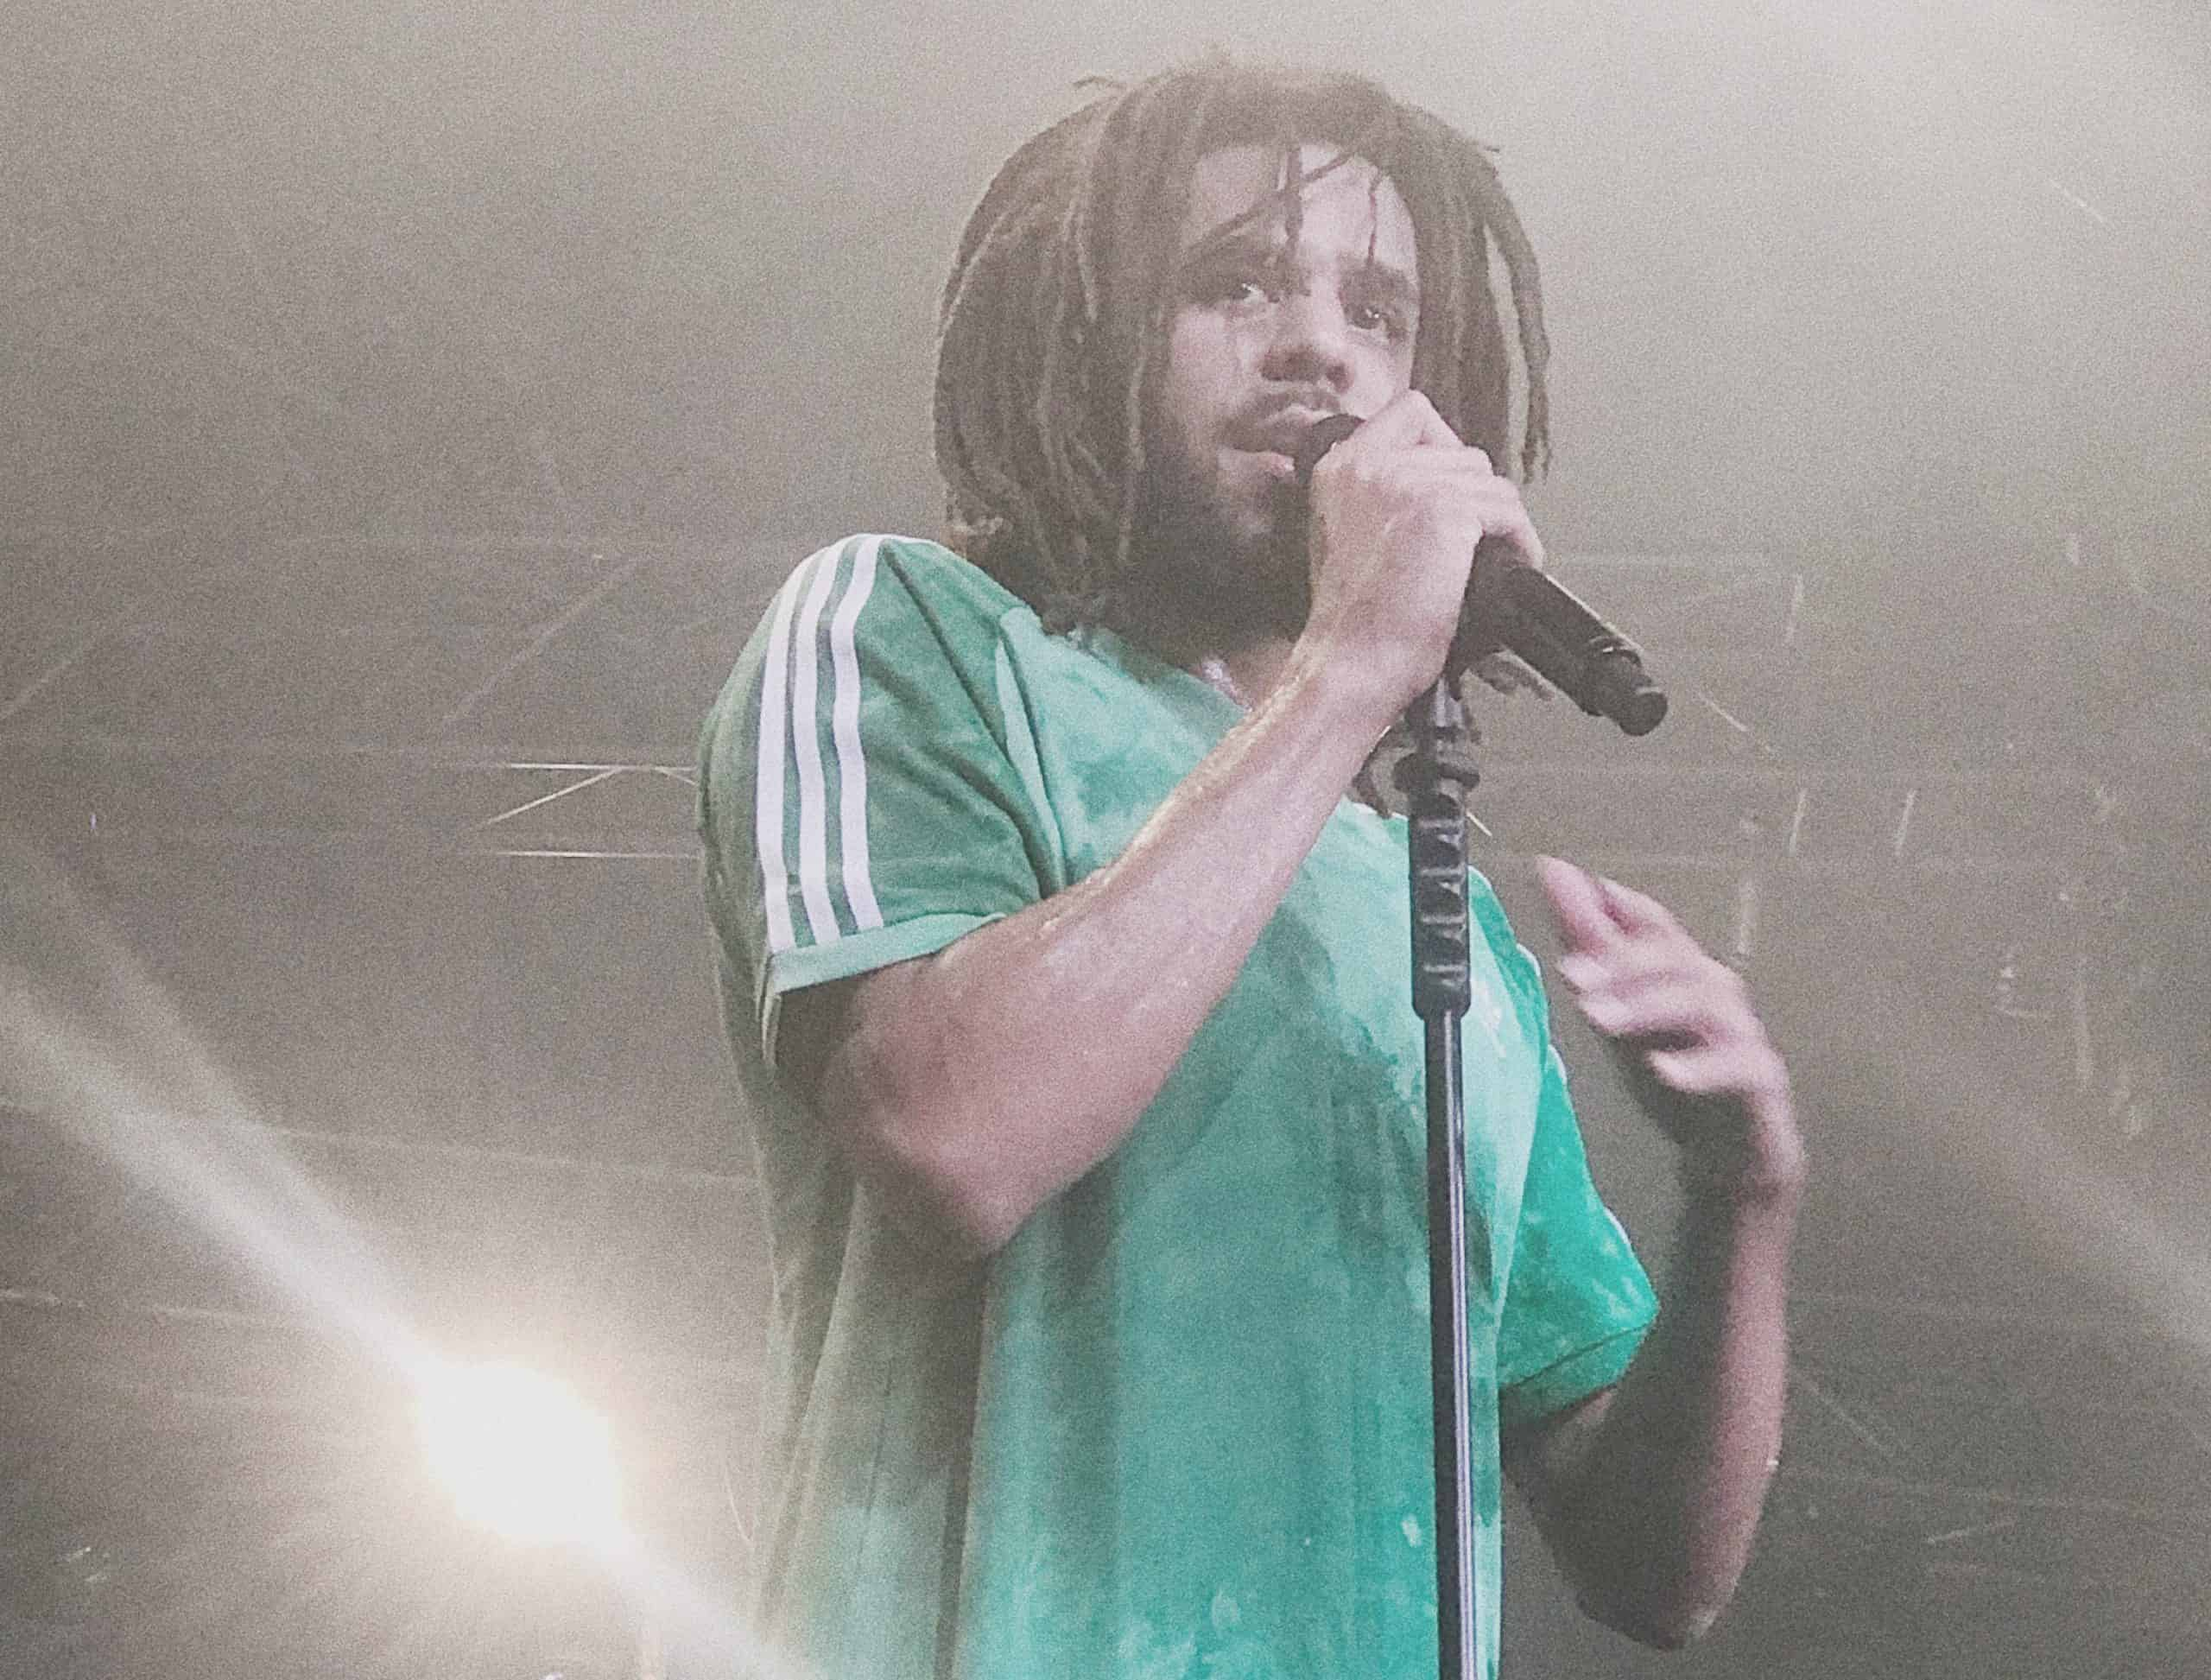 Here are some epic close-ups of J.Cole on-stage at the Eko Convention centre